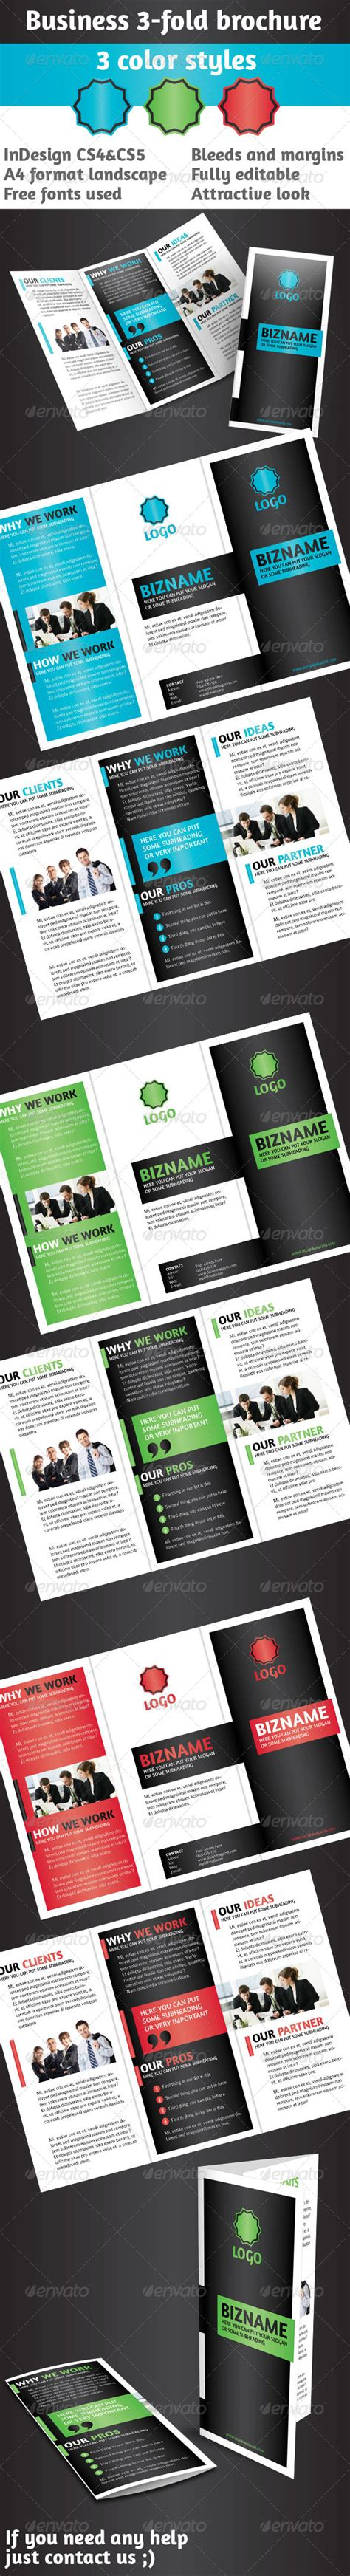 business 3 fold brochure multi color indesign graphicriver